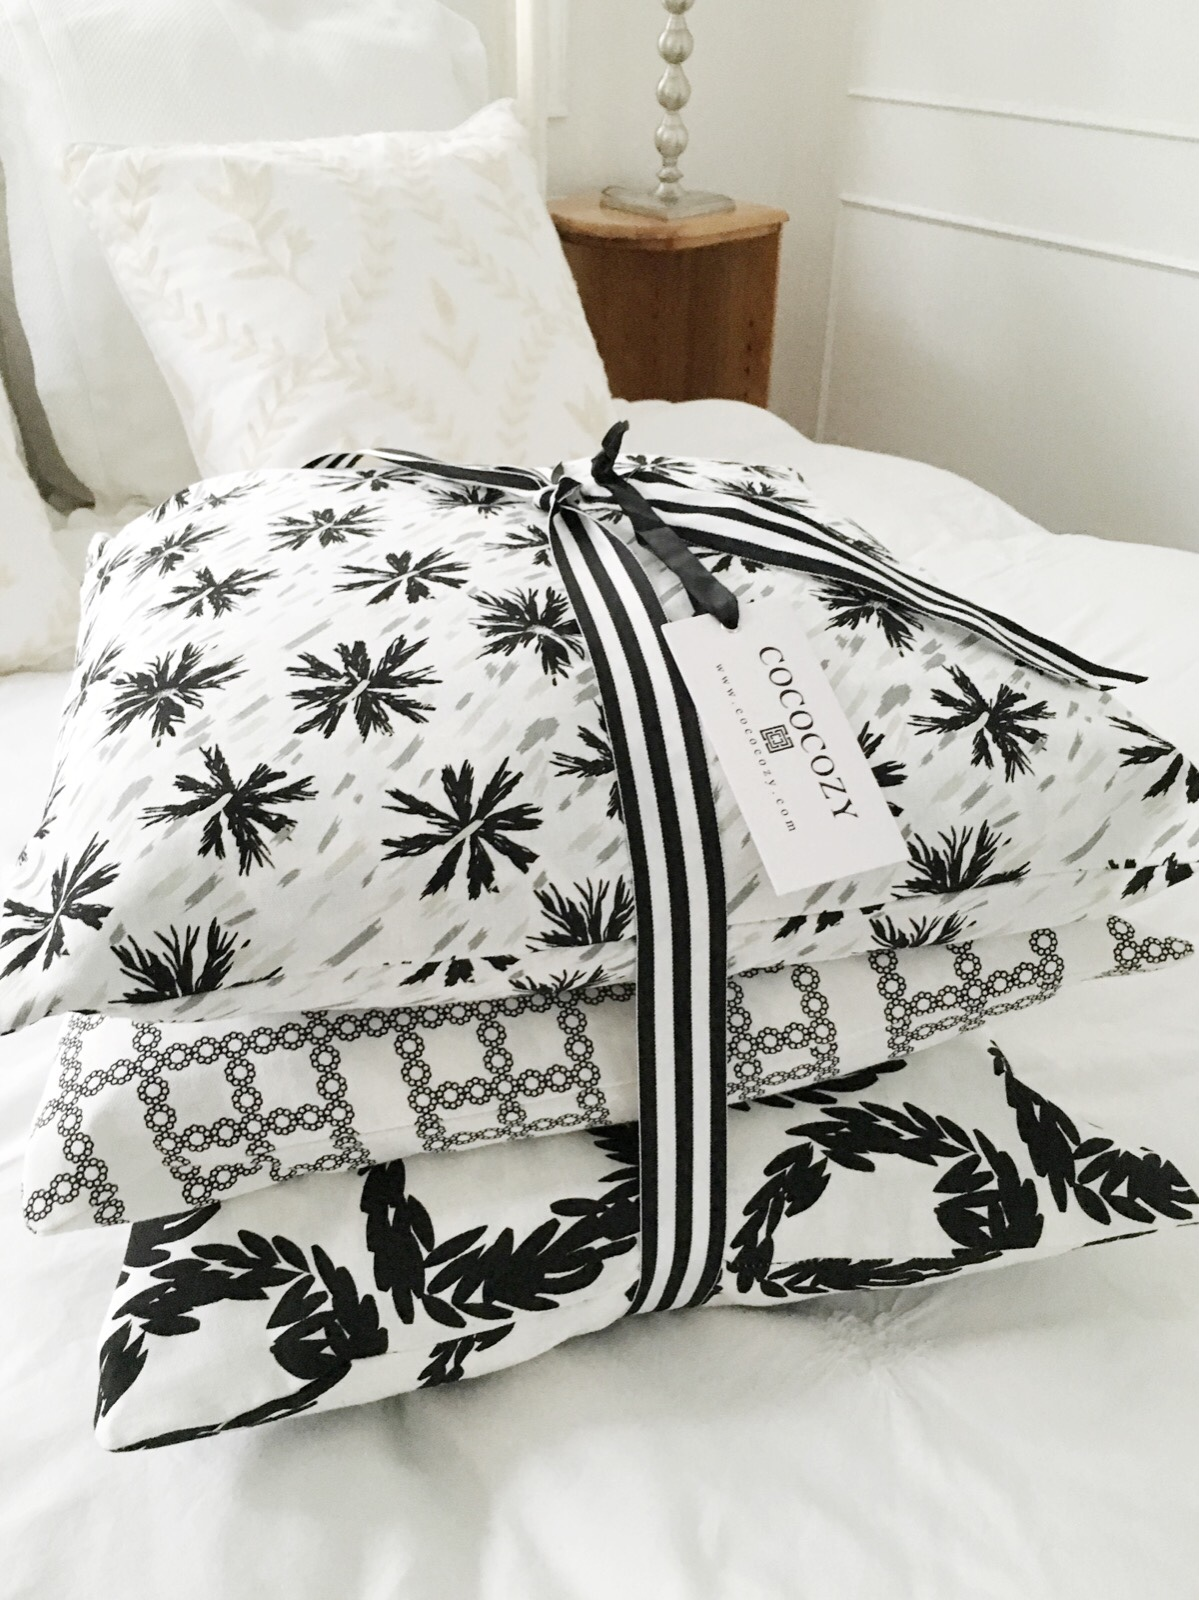 Black white pillows